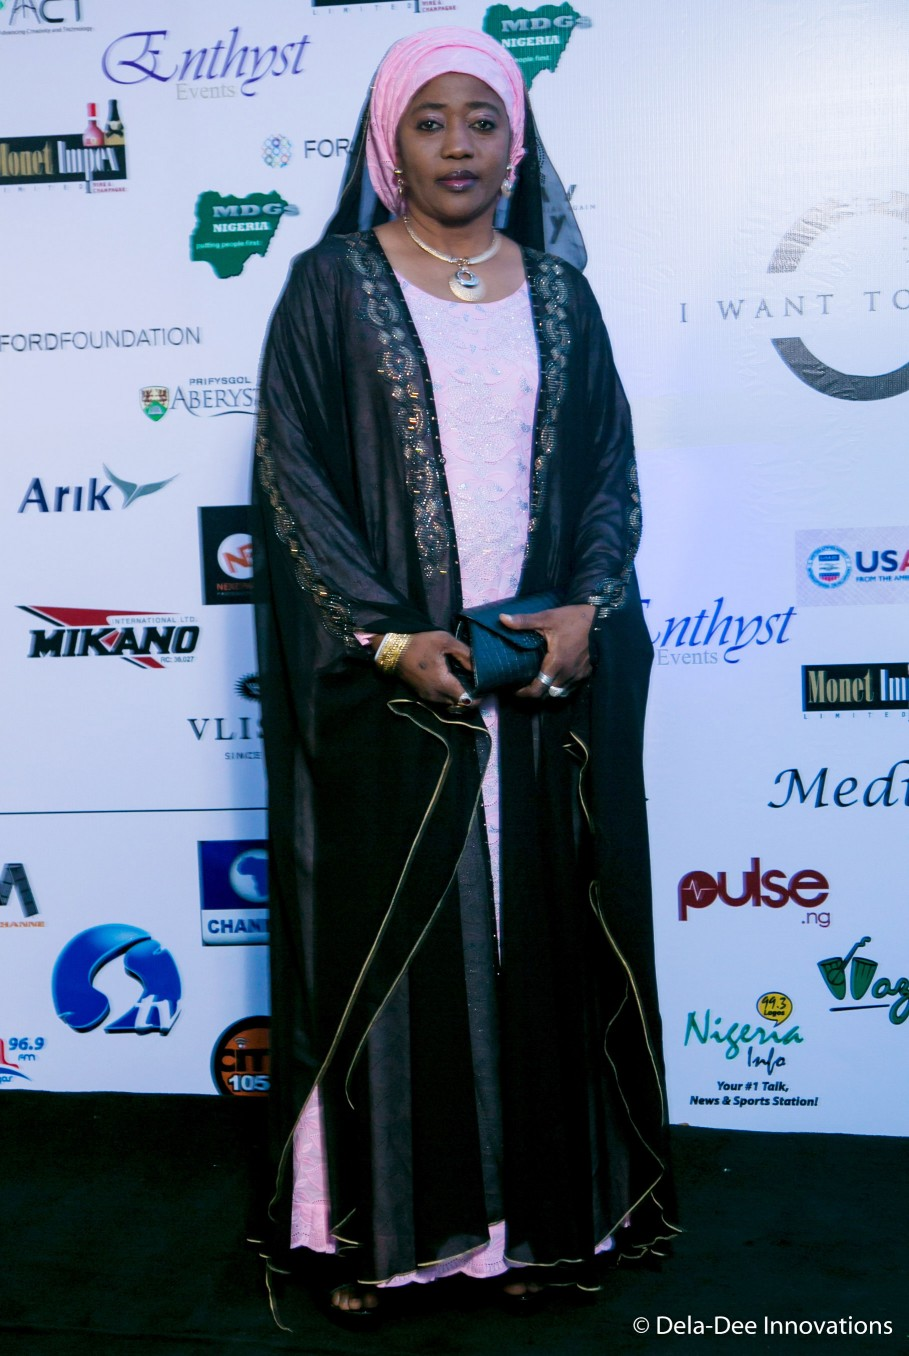 Hauwa Maina (played the role of Hadiza)